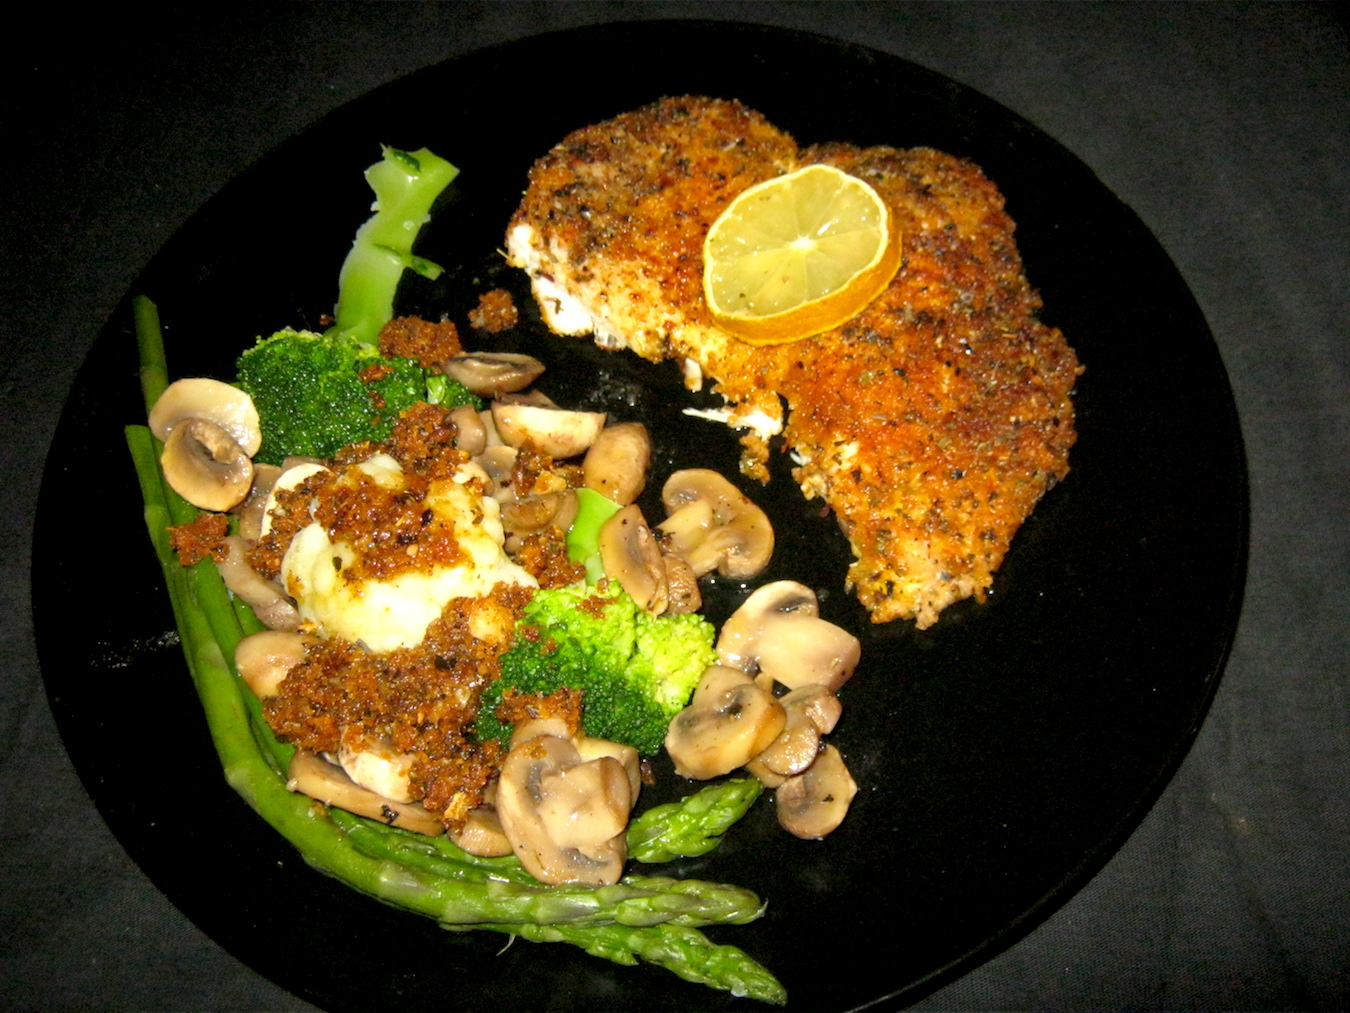 Chicken Schnitzel with Vegetables on a black plate